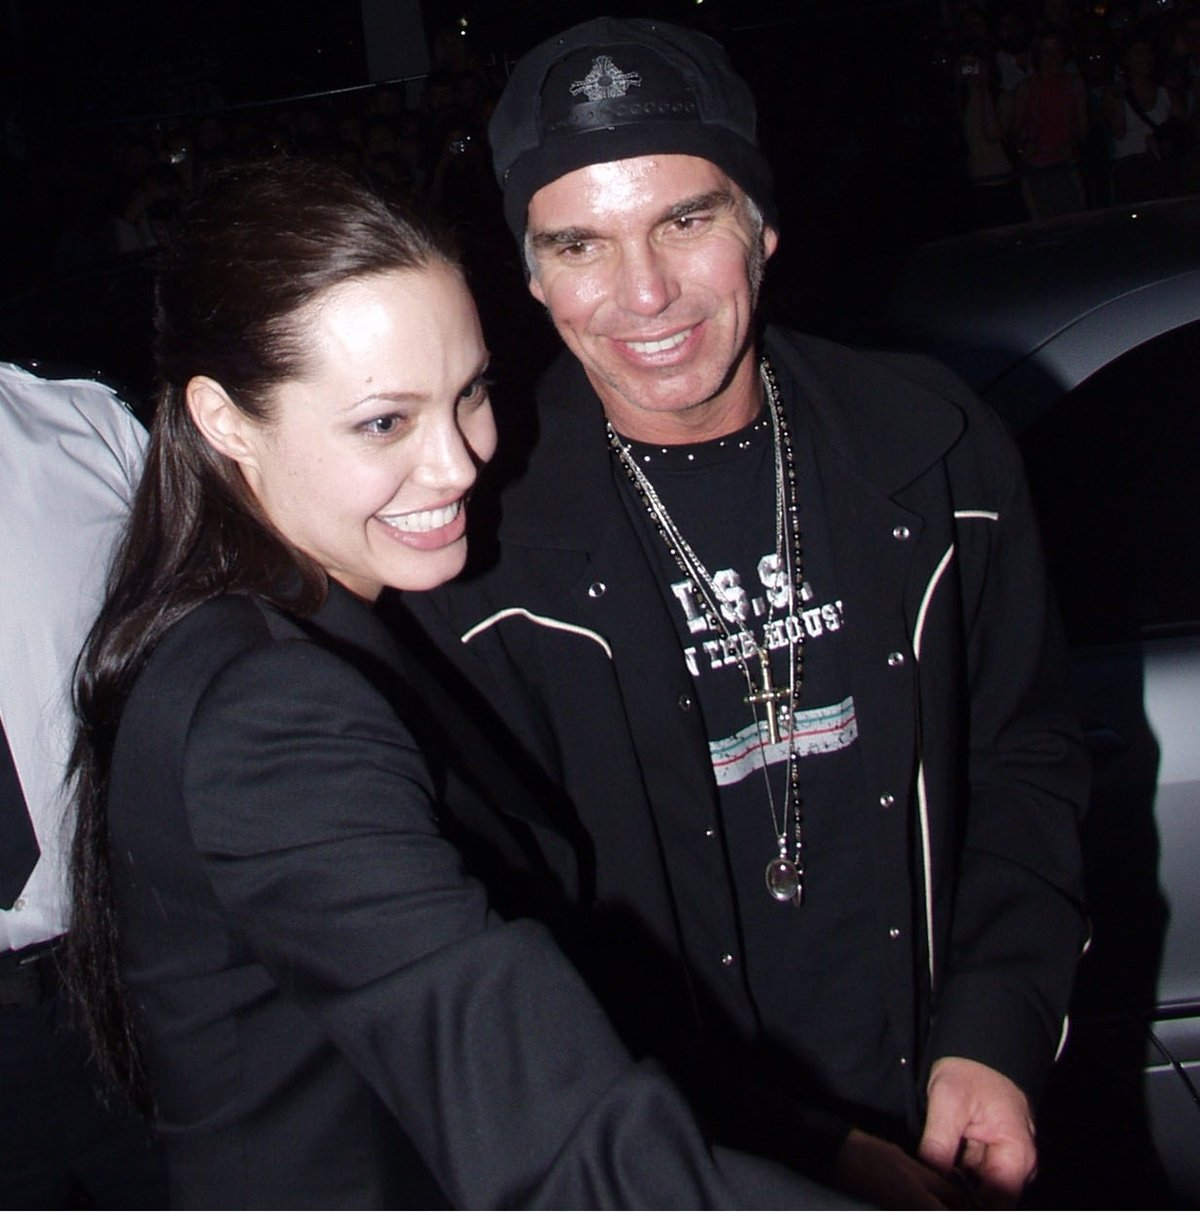 Angelina Jolie and Billy Bob Thornton fell in love after meeting on the set of the 1999 film Pushing Tin